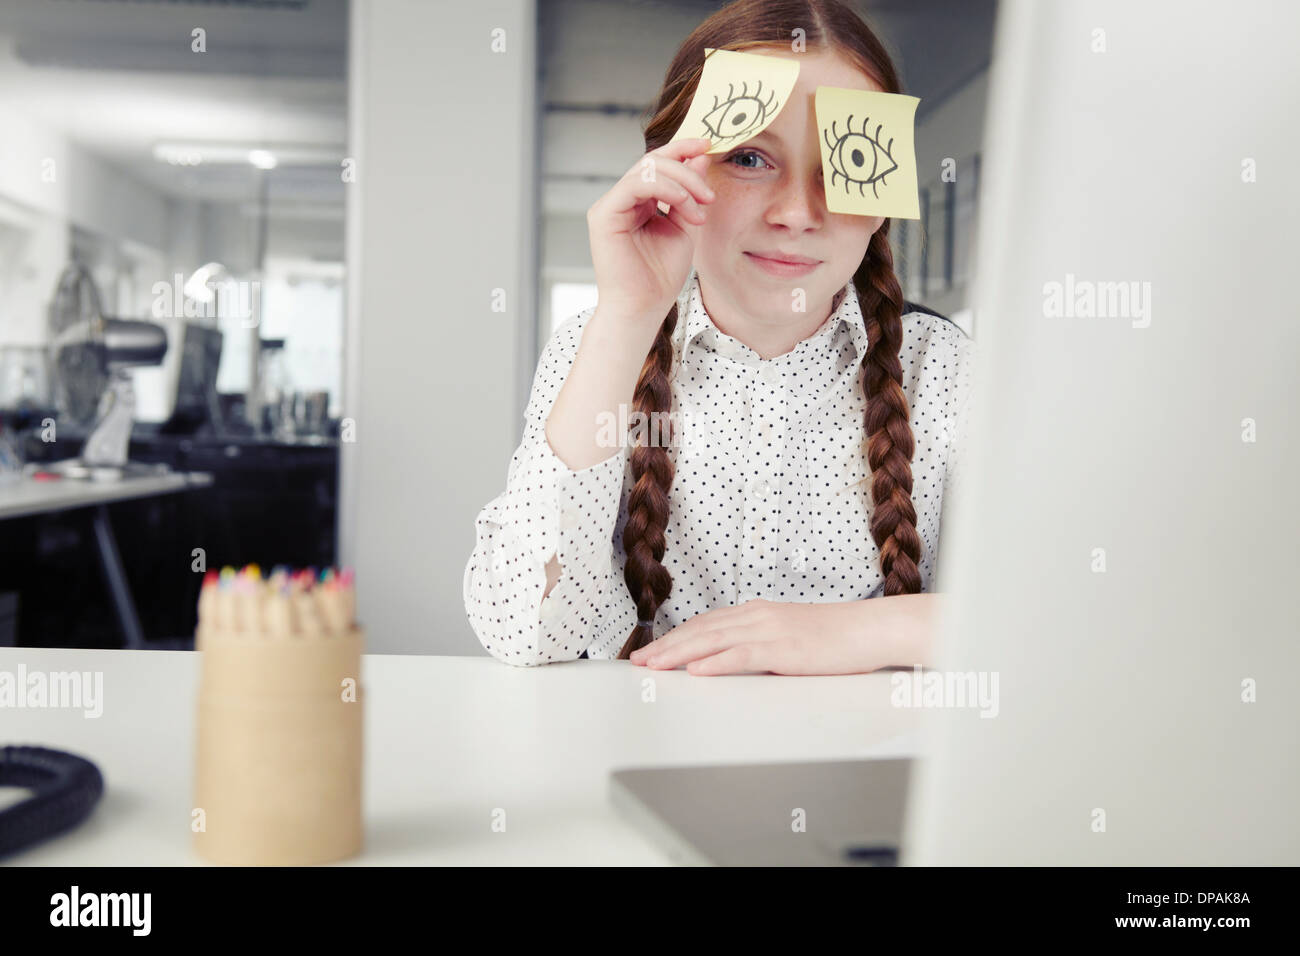 Girl in office with adhesive notes covering eyes, peeking - Stock Image